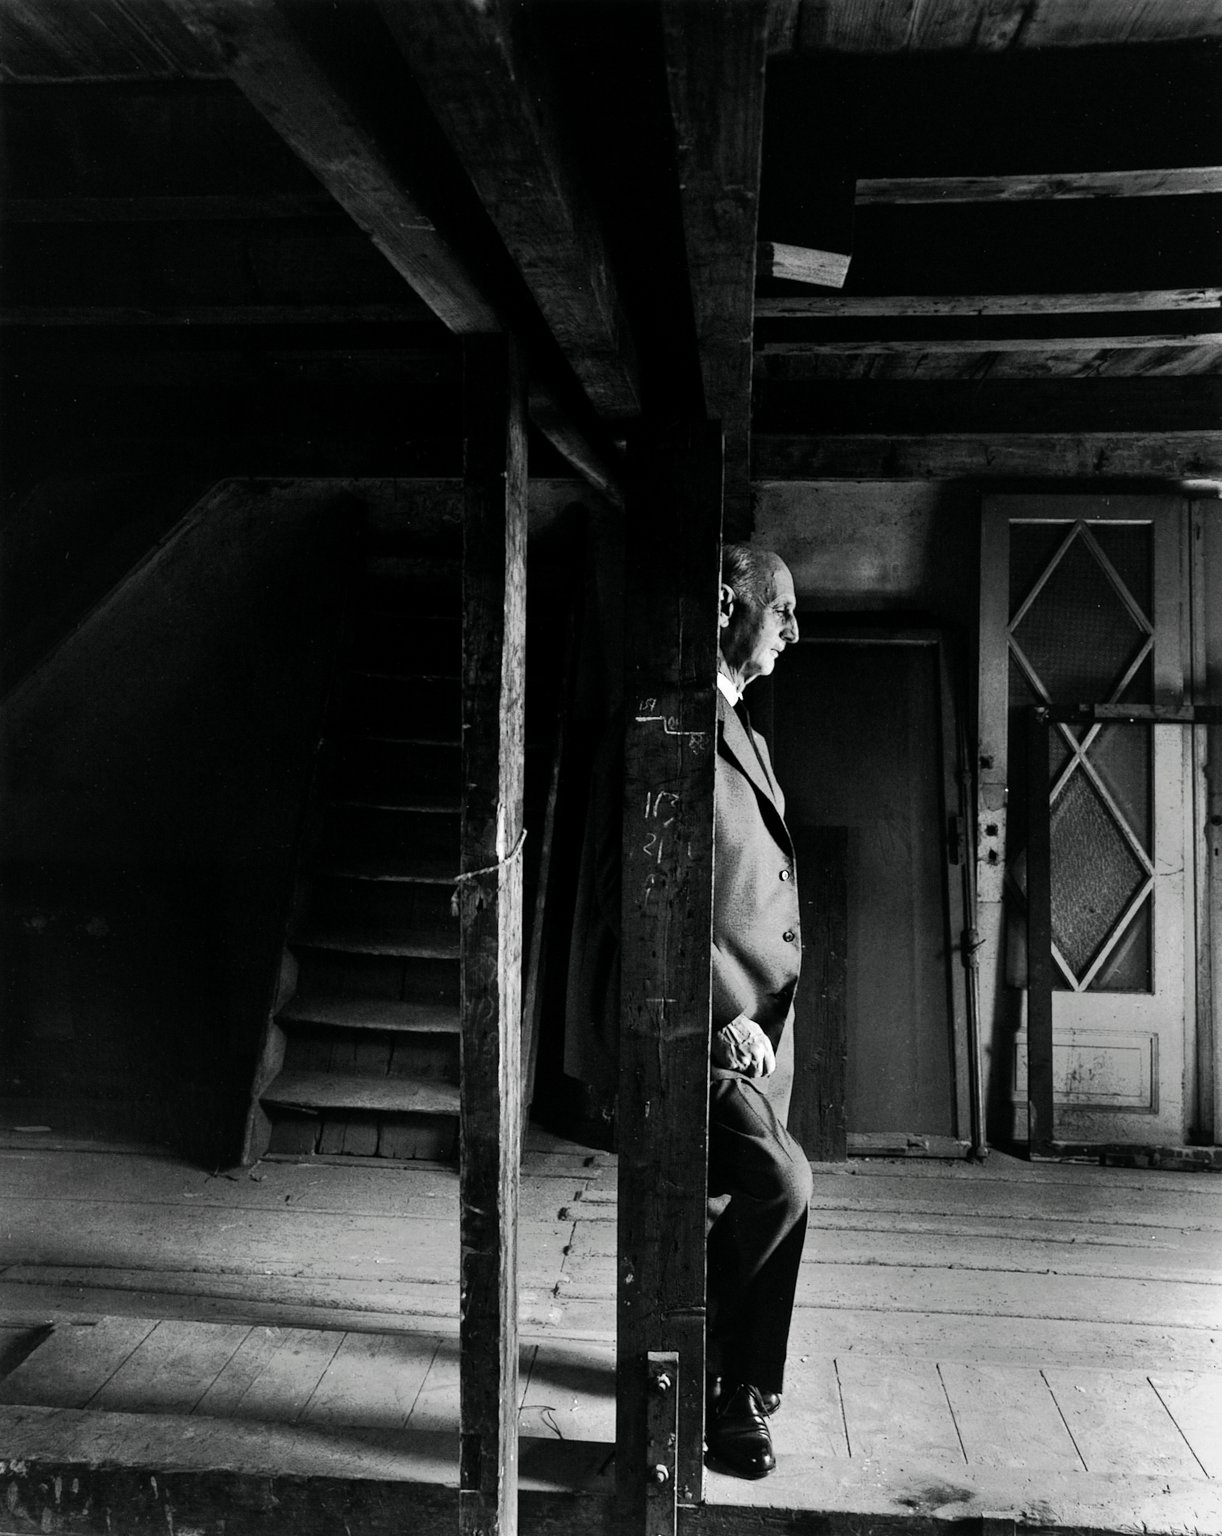 Otto Frank in the attic of the Secret Annex on the day the Anne Frank House was officially opened, 3 May 1960